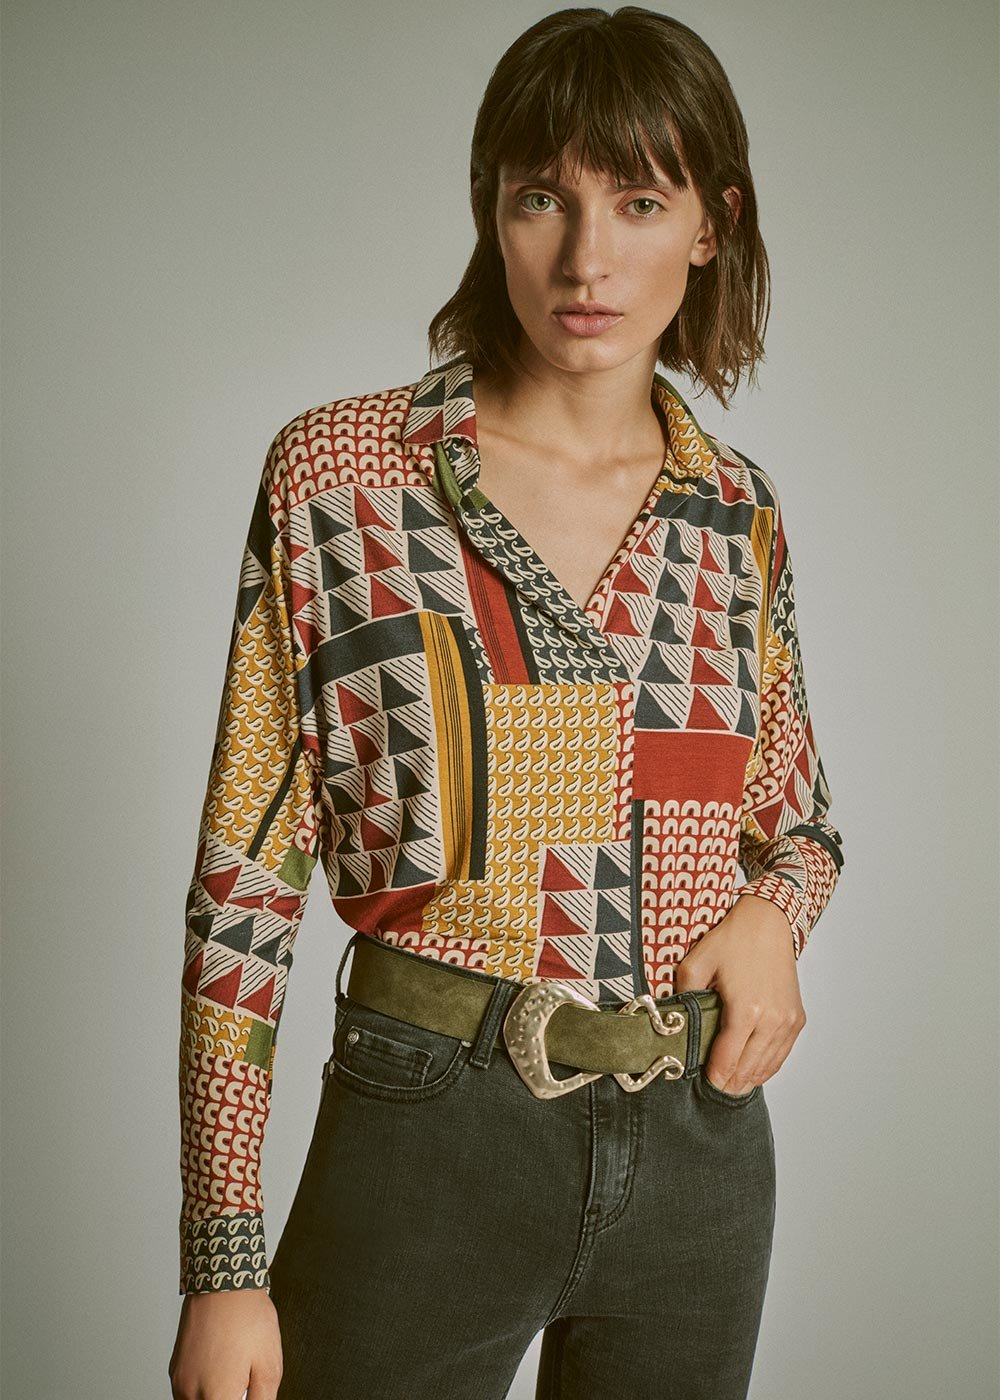 Selly t-shirt with '70s-style pattern - Green Bronze Multi - Woman